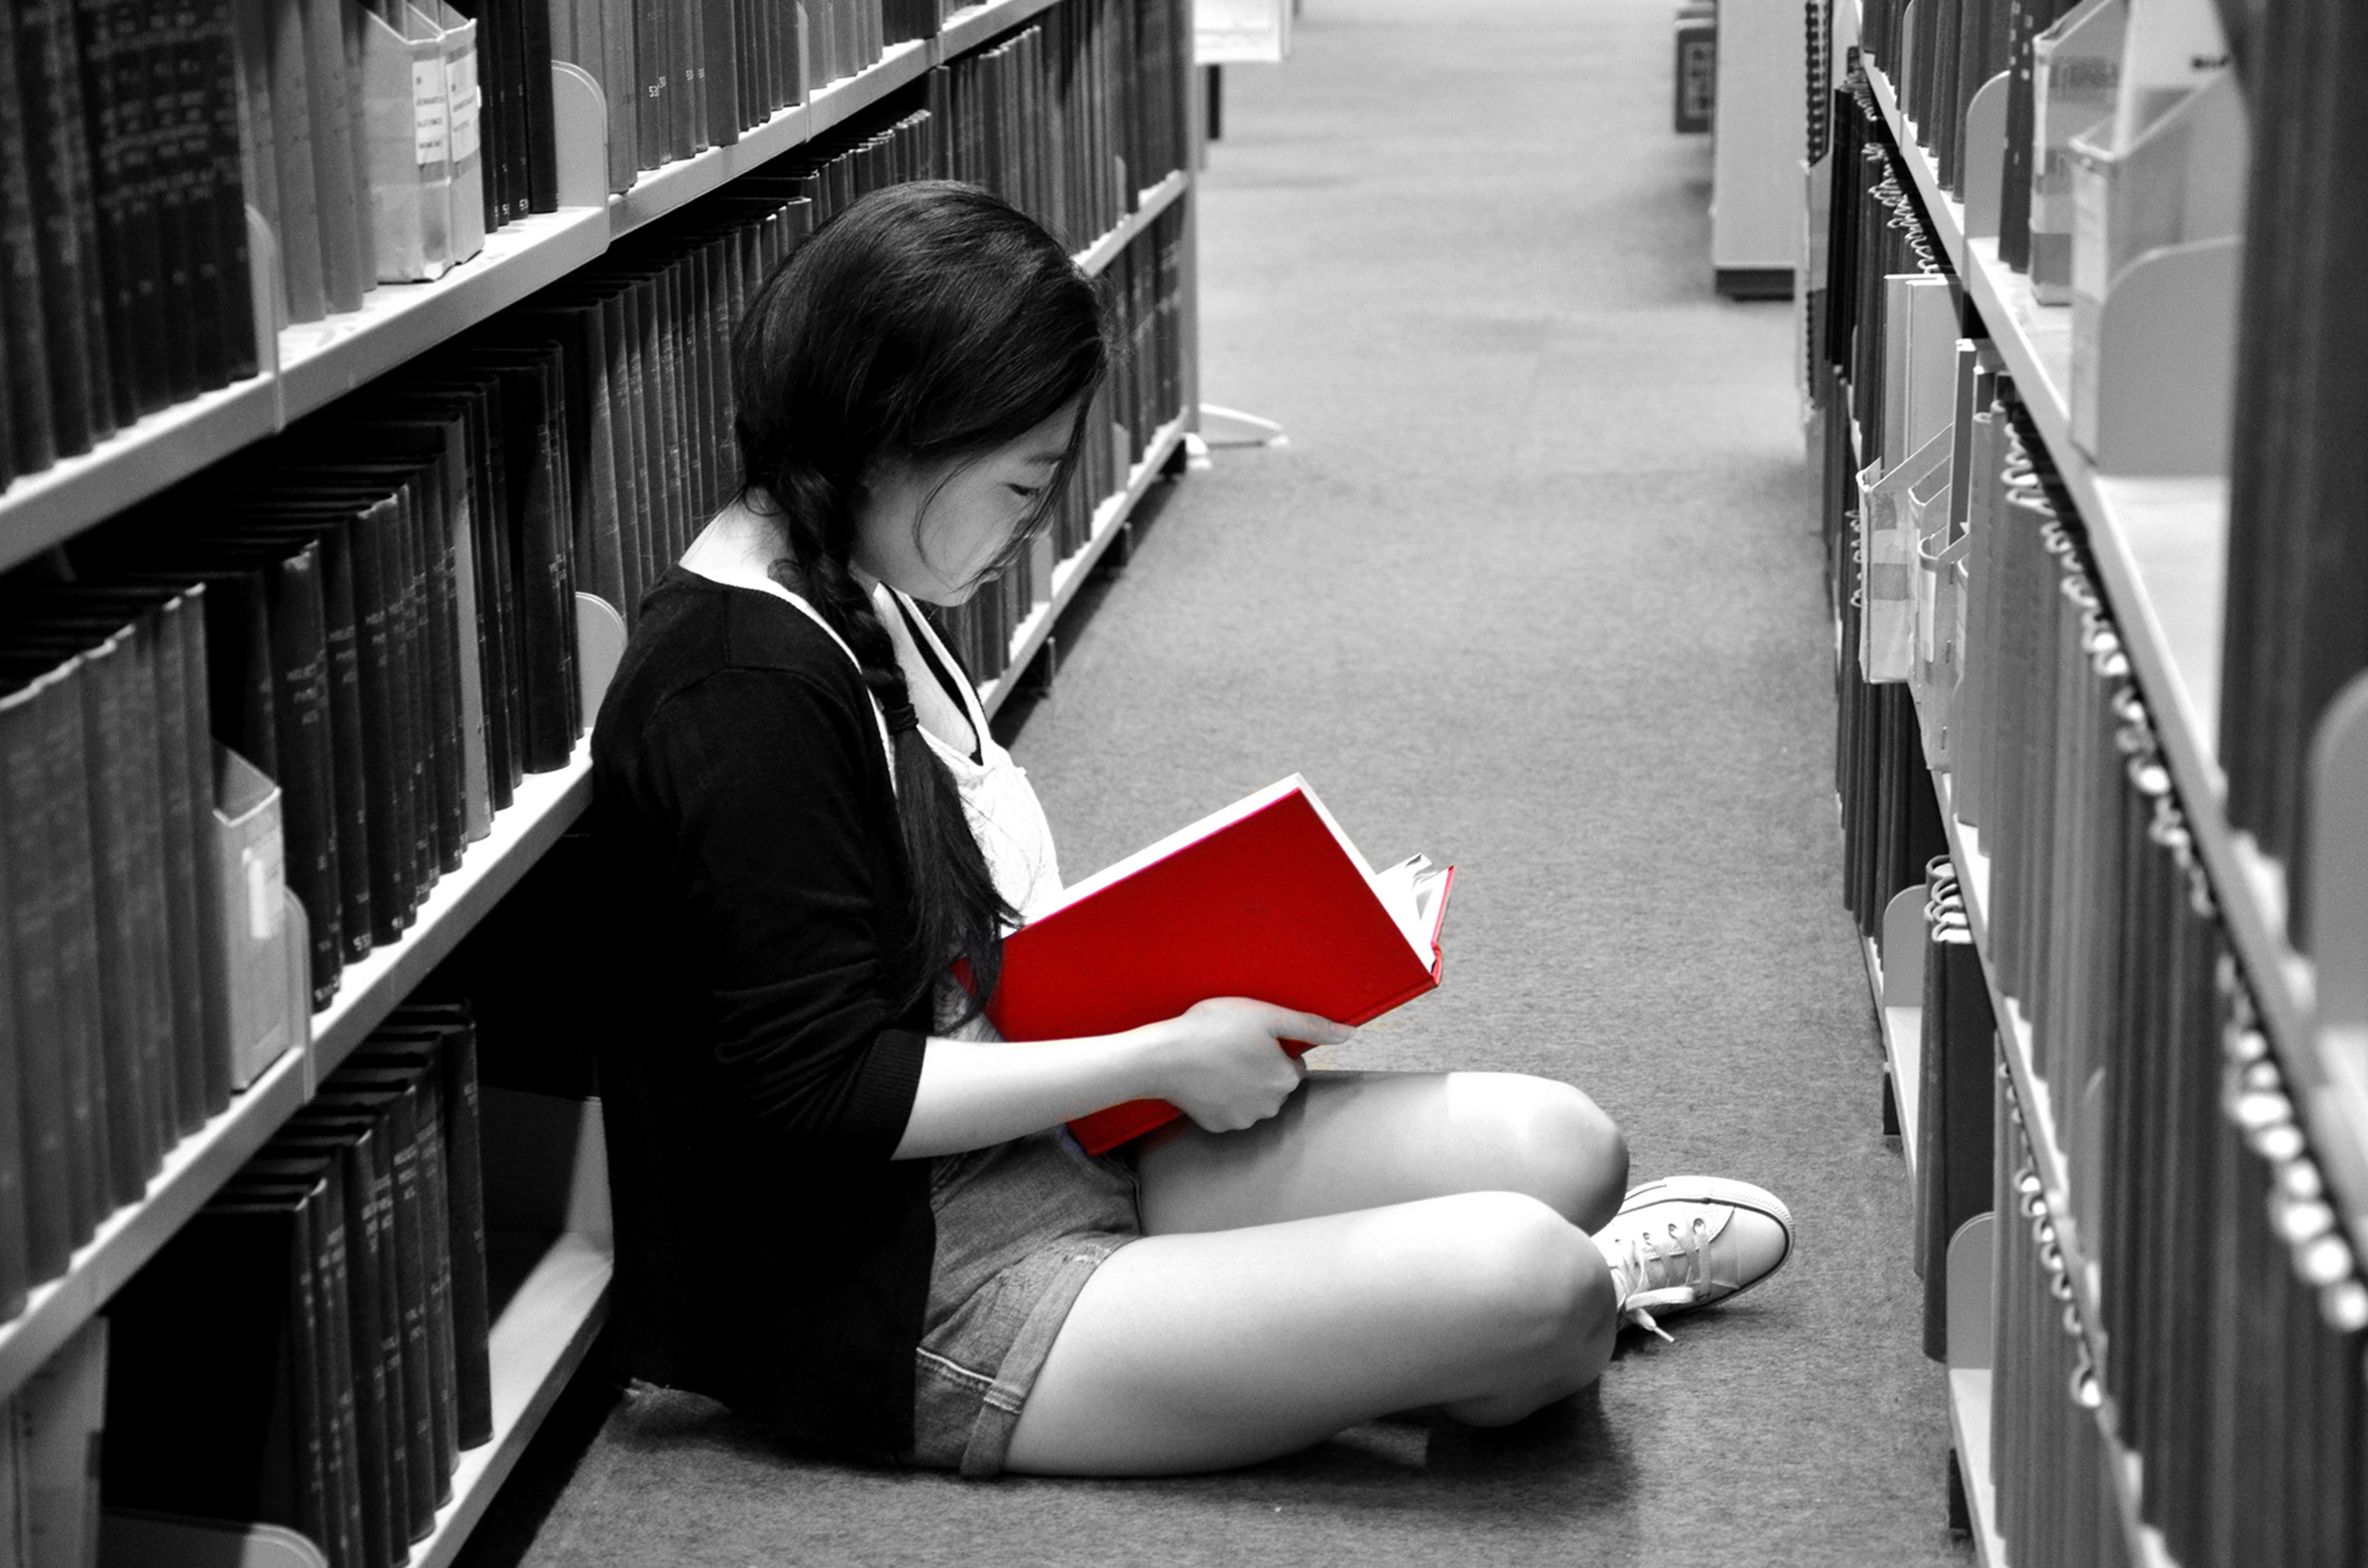 Reading is the passion. The first floor of library